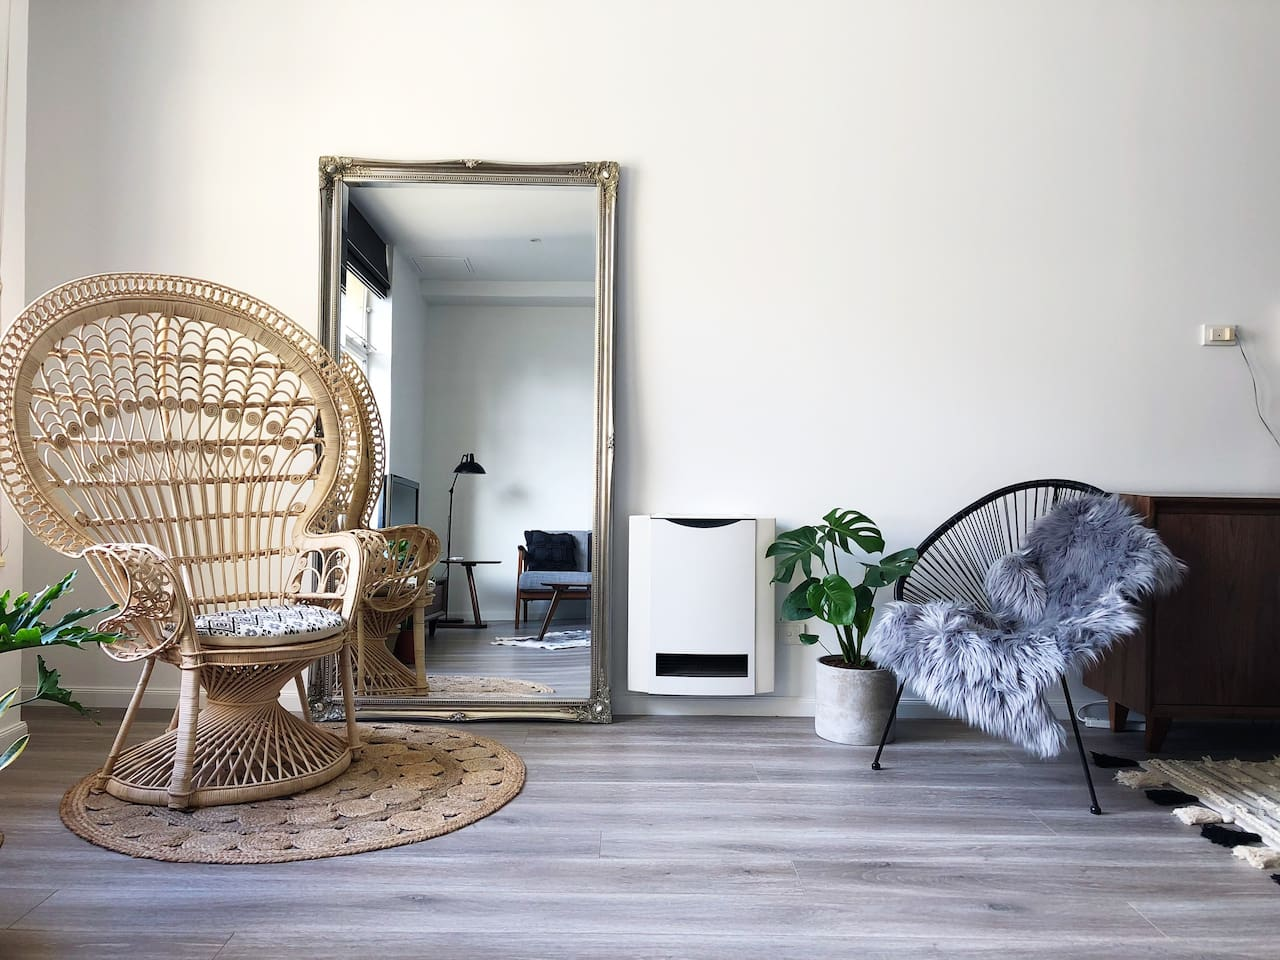 Newly renovated, stylish interior with the best location!